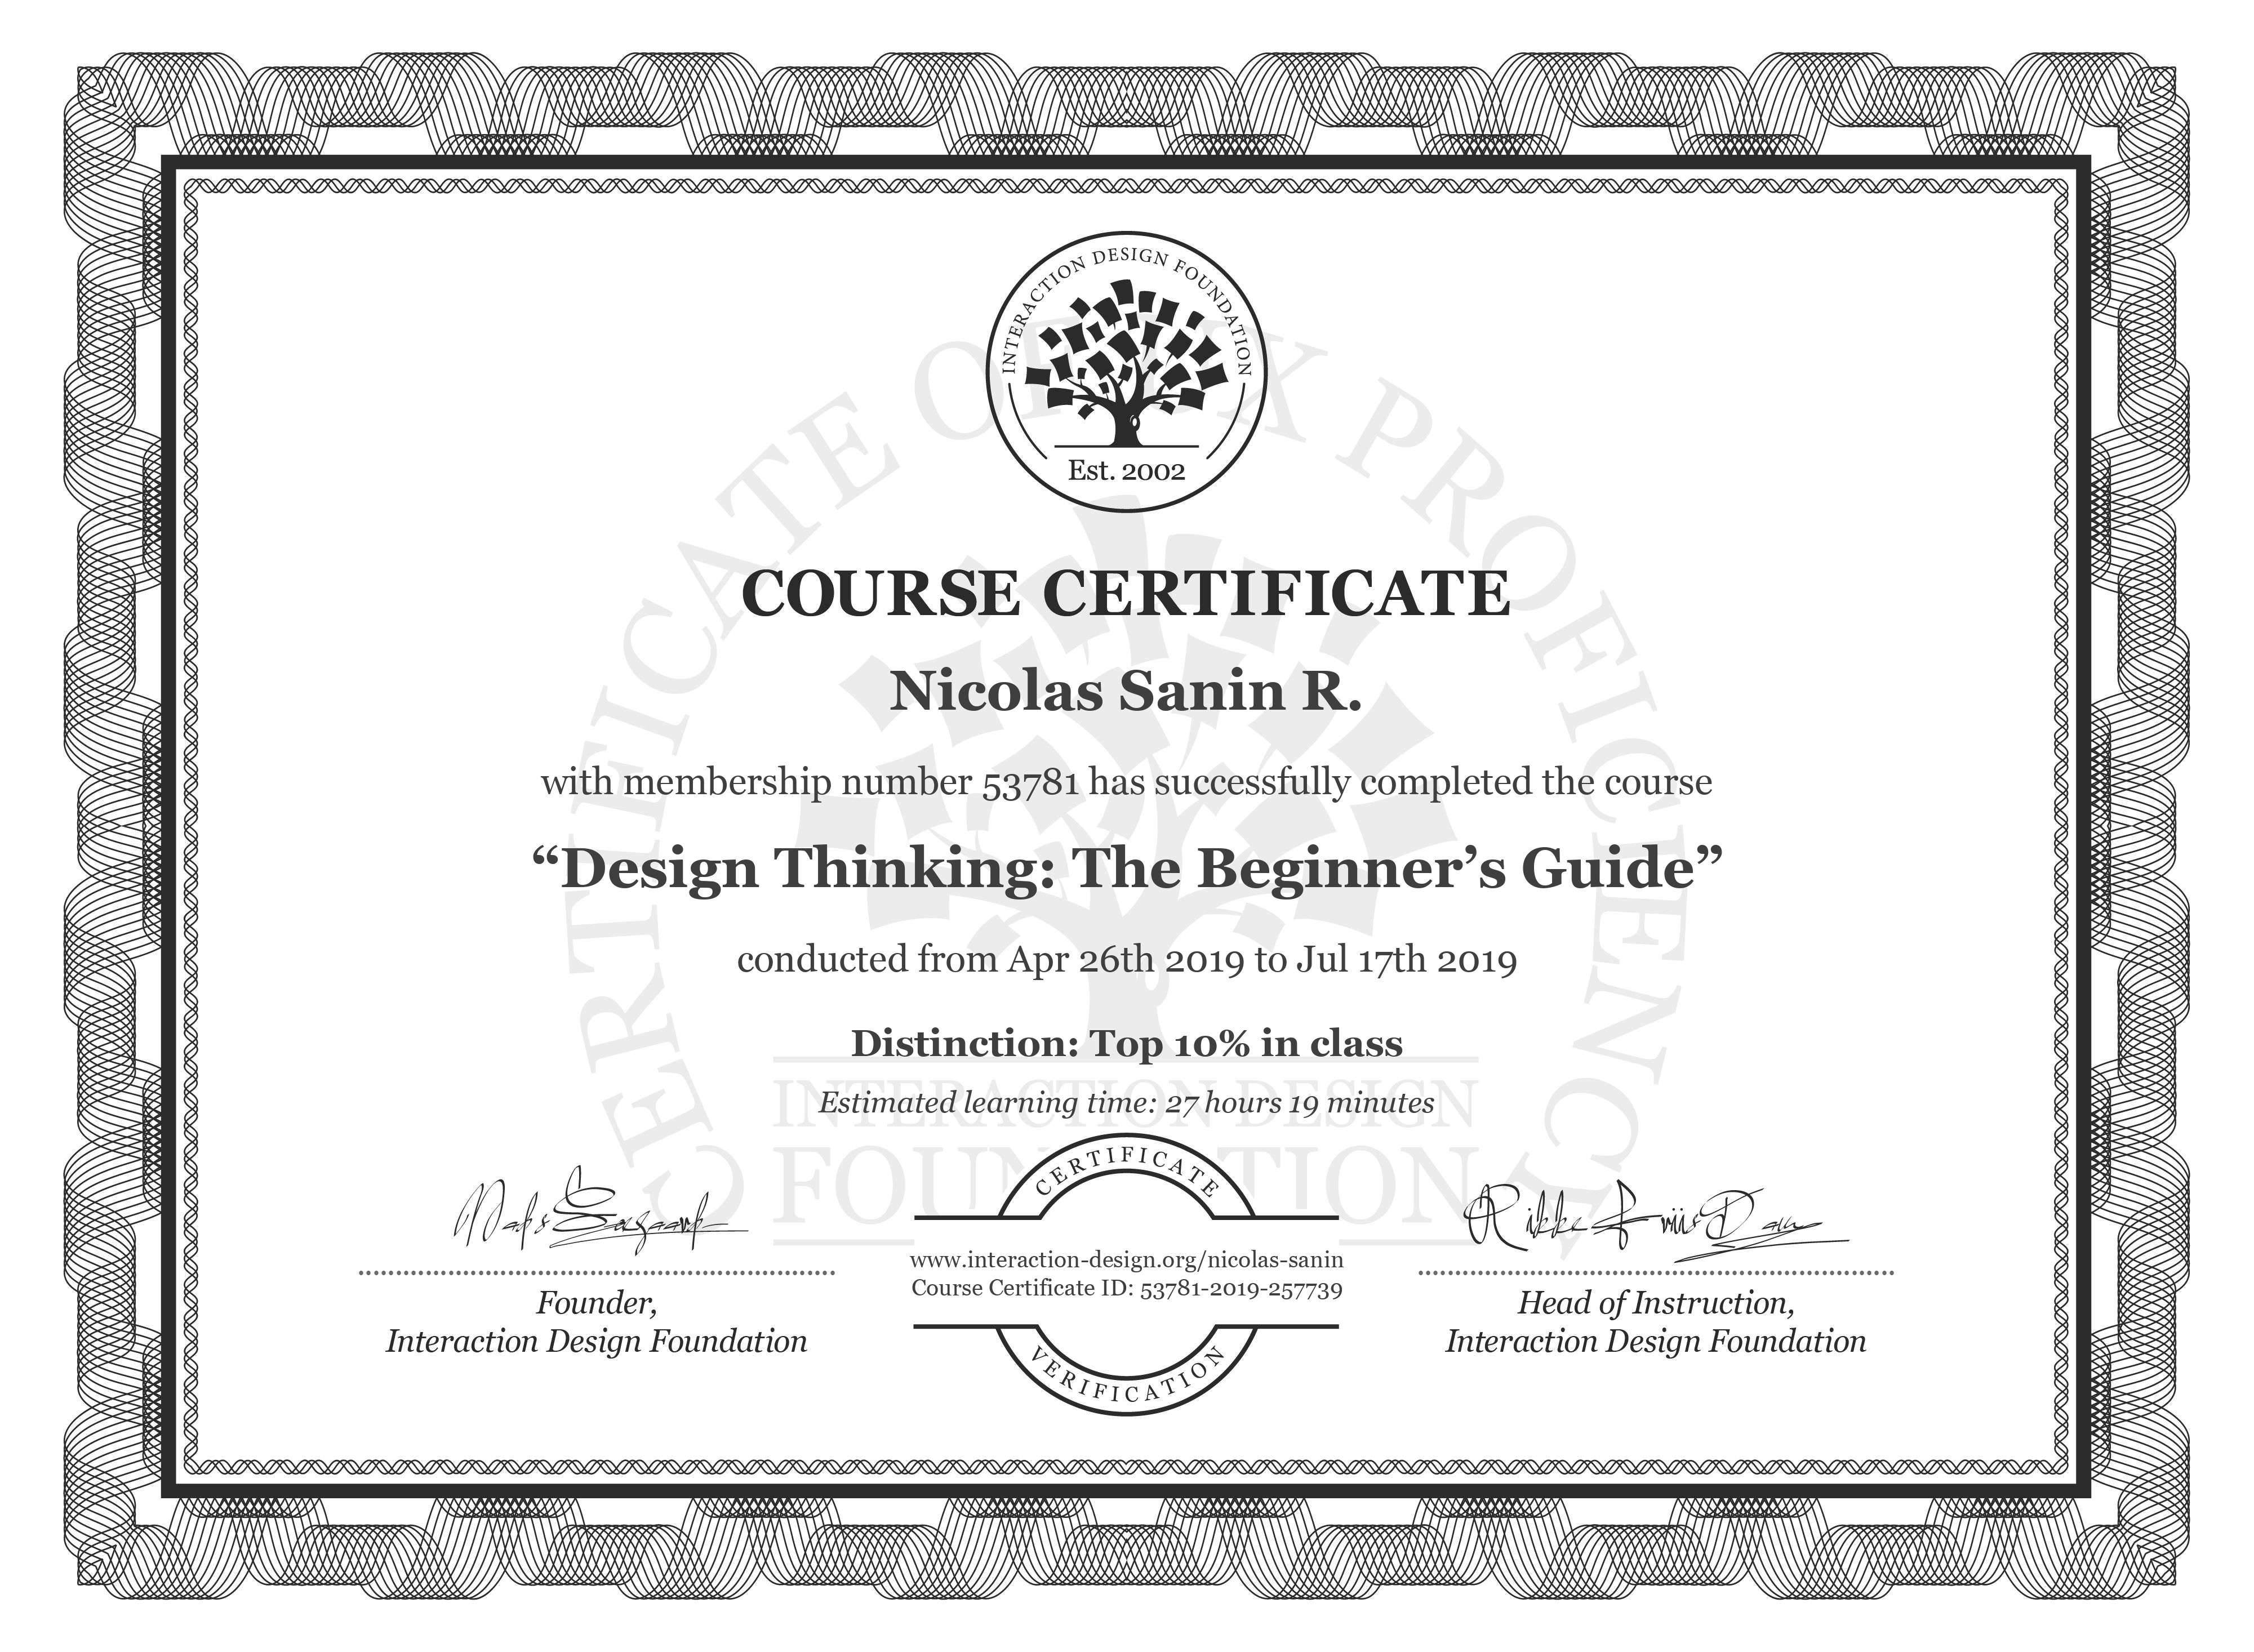 Nicolas Sanin R.: Course Certificate - Design Thinking: The Beginner's Guide